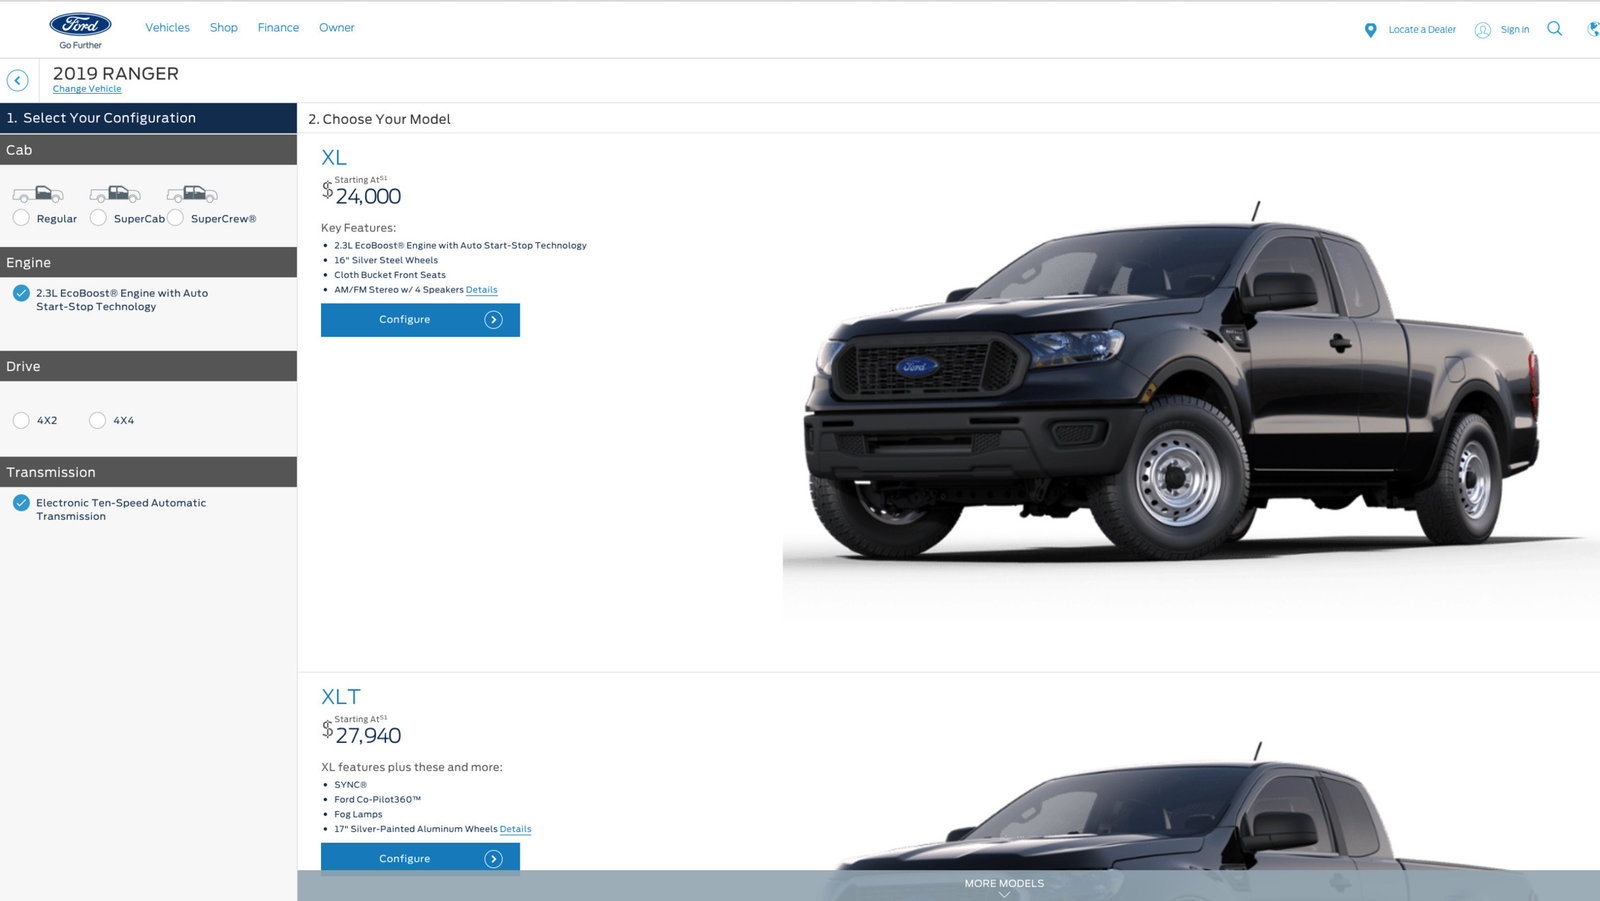 2019 Ford Ranger configuration tool and pricing [draft] live